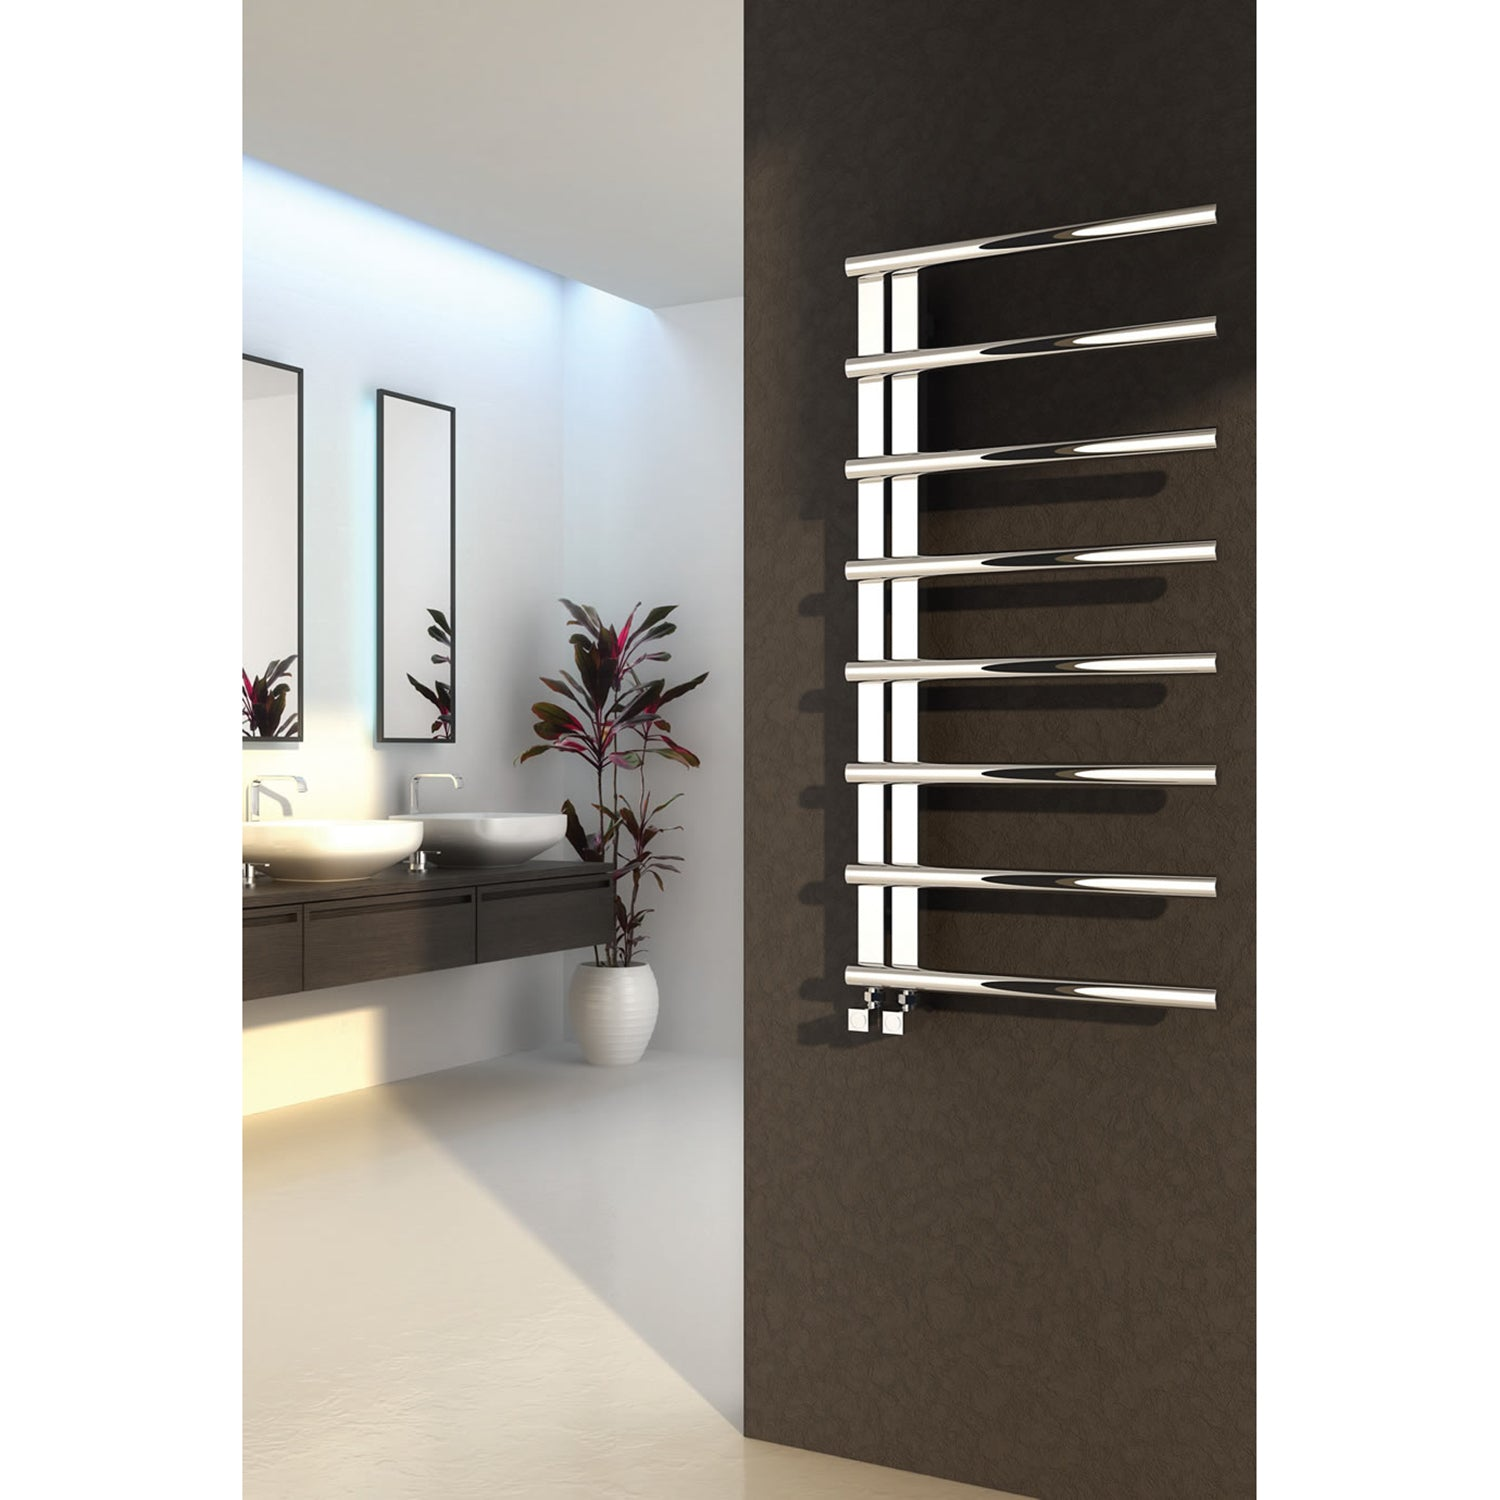 Reina Designer Celico Vertical Heated Towel Rail